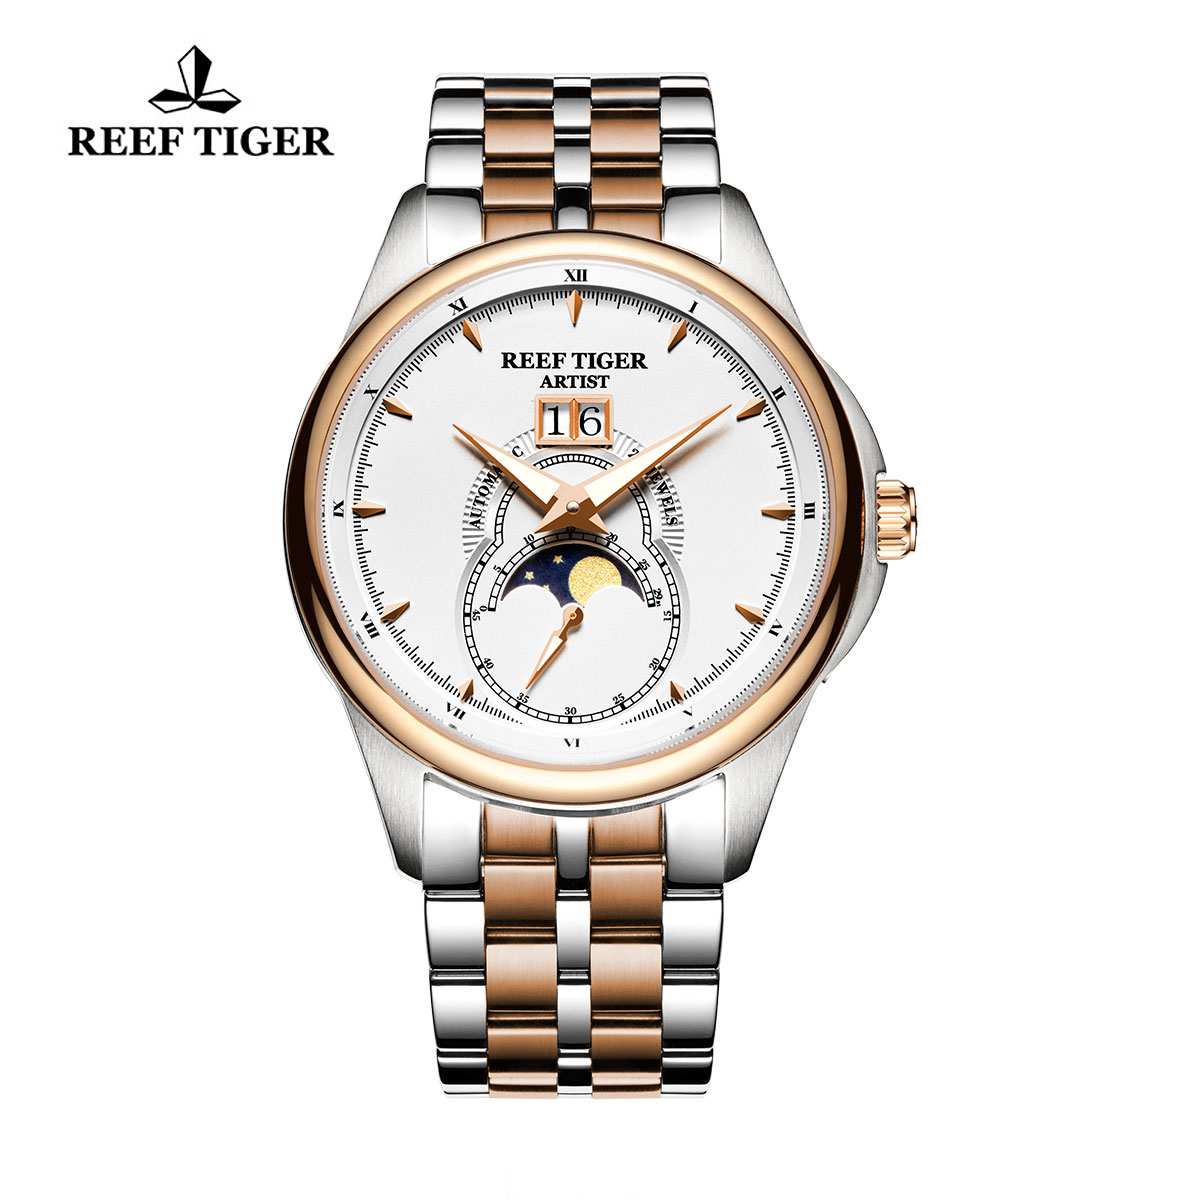 Reef Tiger Knighthood Casual Watch with Dual Calendar White Dial Two Tone Case RGA1928-PWT